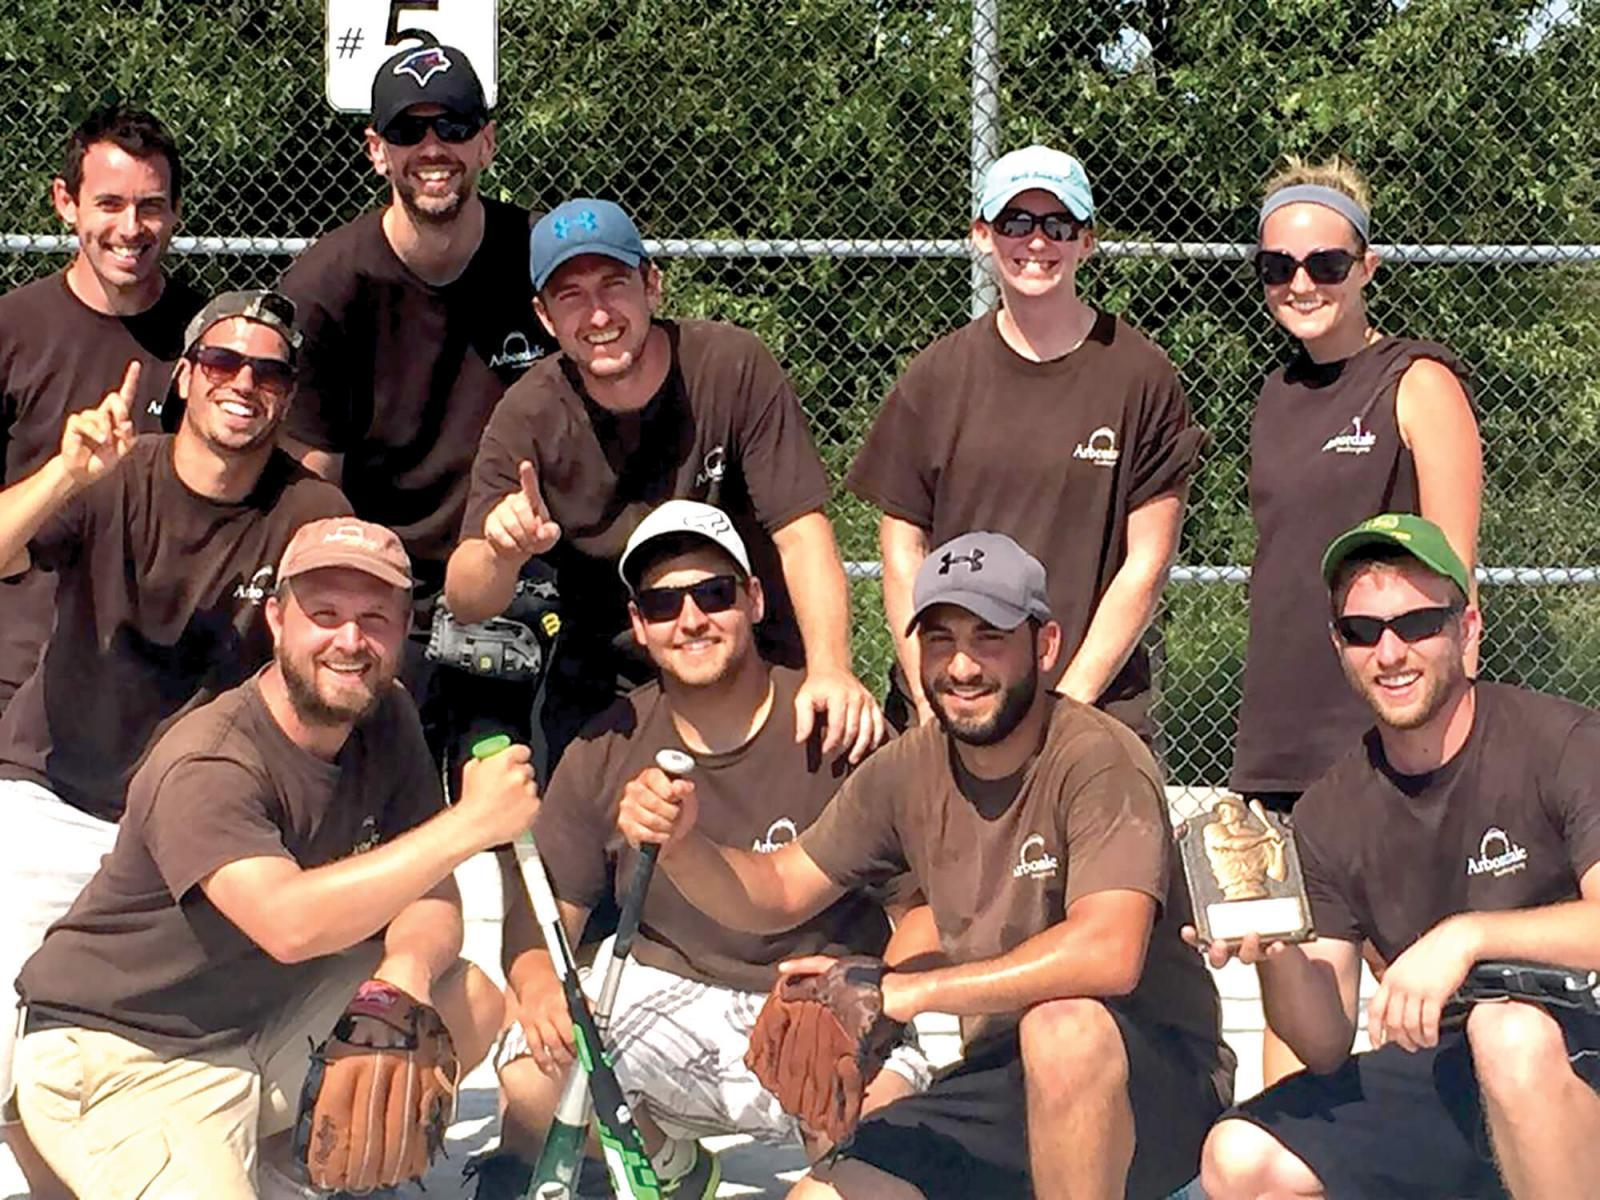 The Arbordale team members are shown in photo after winning the championship. Front row, from left, Martin Zettel, Lucas Kennedy, Mike Brandolino and Blake Tubby; second row, from left, Chris Fazzari, Adam Young, Tiffany Williams and Samantha Tubby; back row, from left, Mark Hoey and Ryan Kent. Missing from photo are Bob Tubby, Andrew Arseneau and Ani Arseneau.